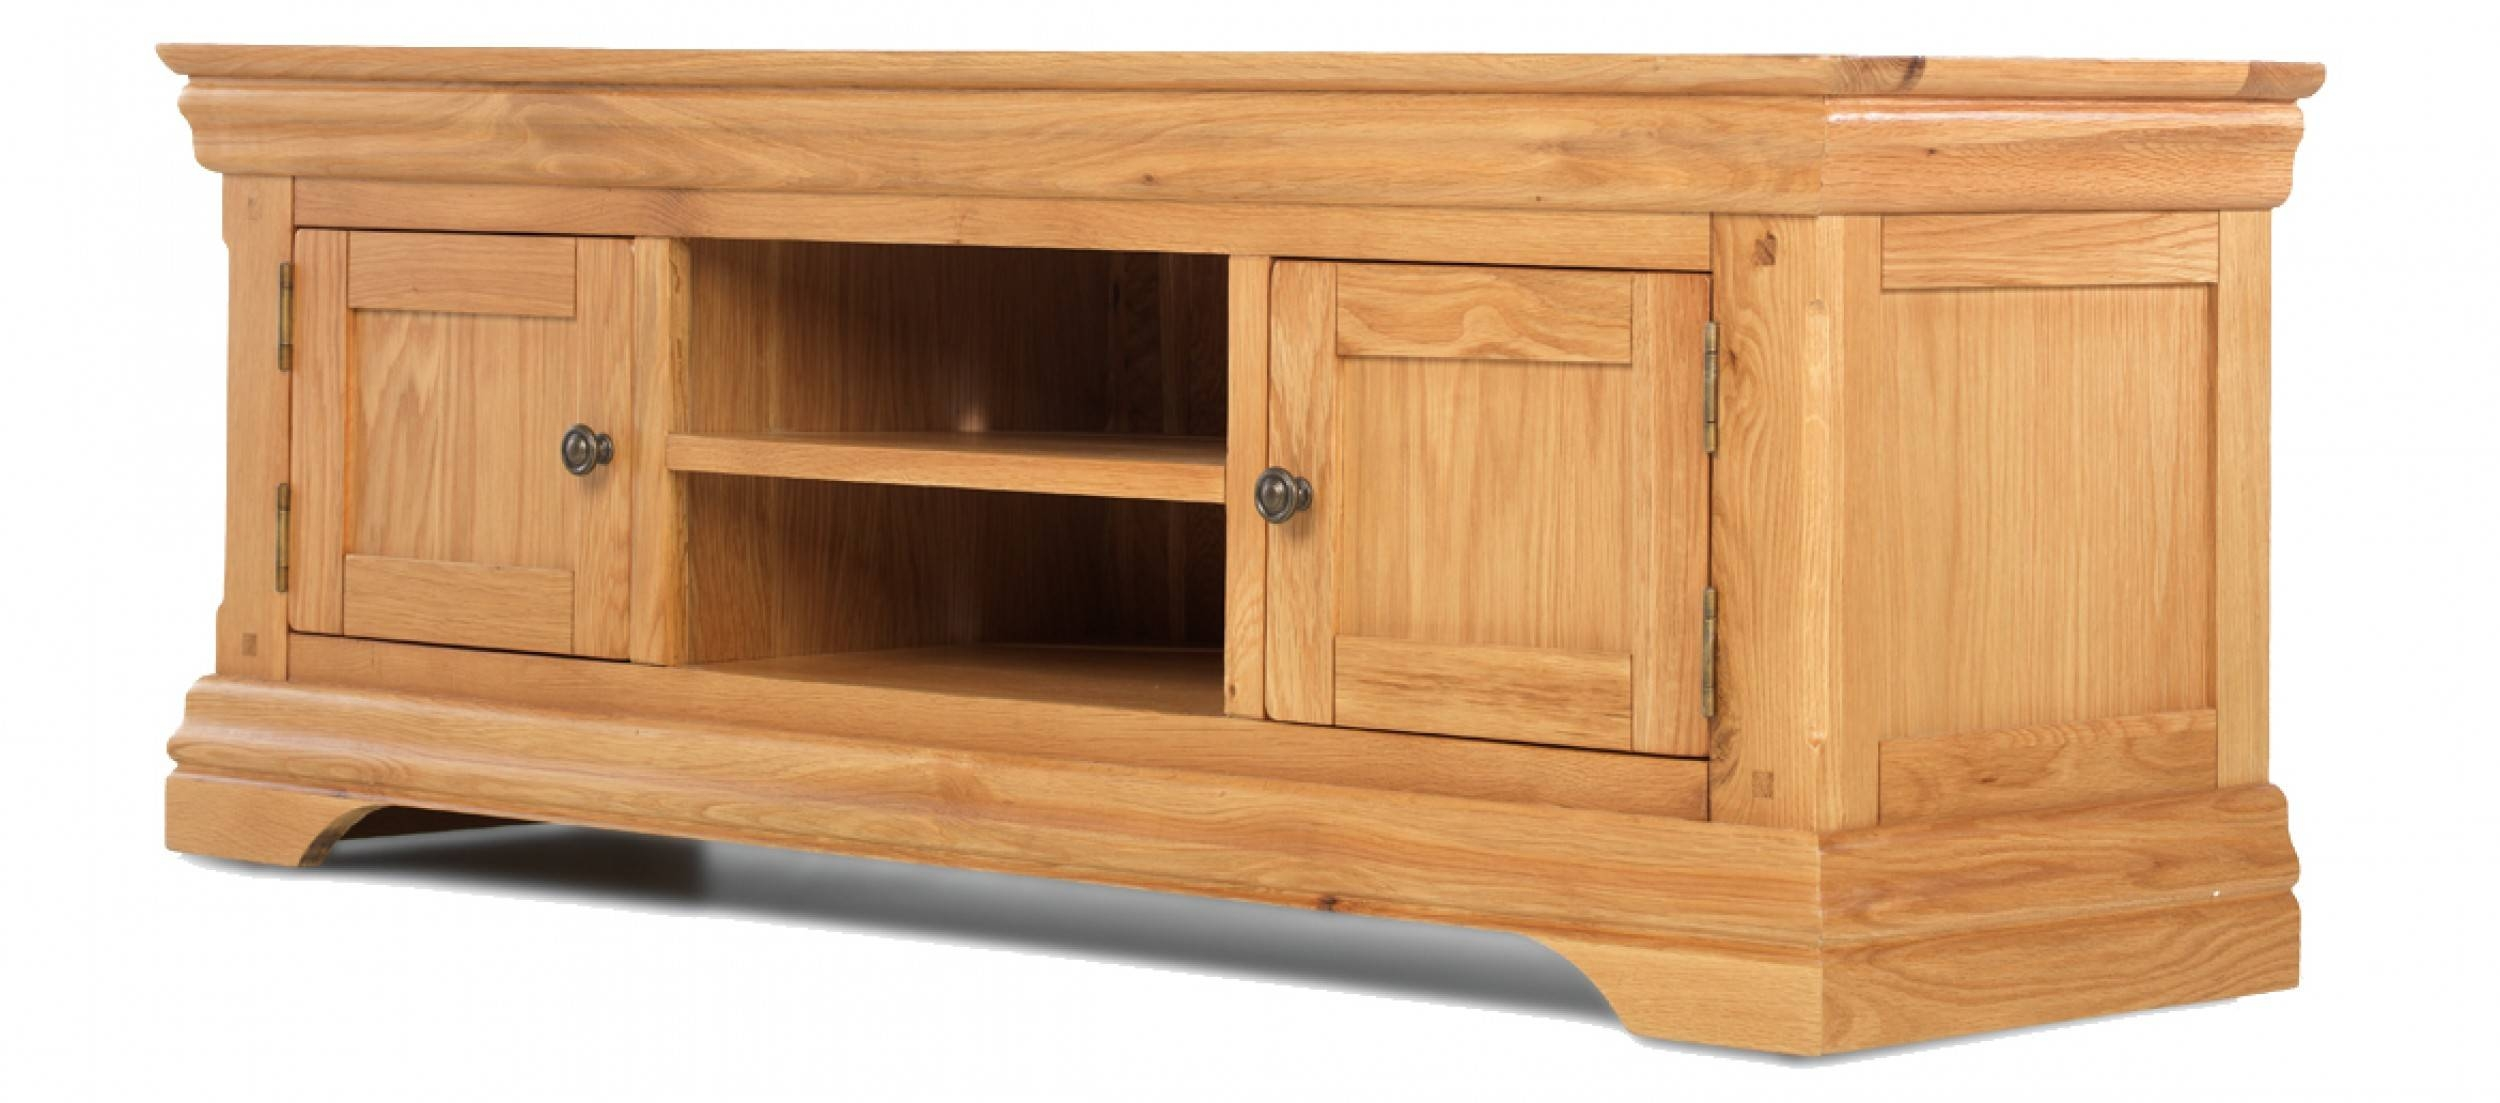 Constance Oak Plasma Tv Stand | Quercus Living With Regard To Plasma Tv Stands (View 7 of 15)